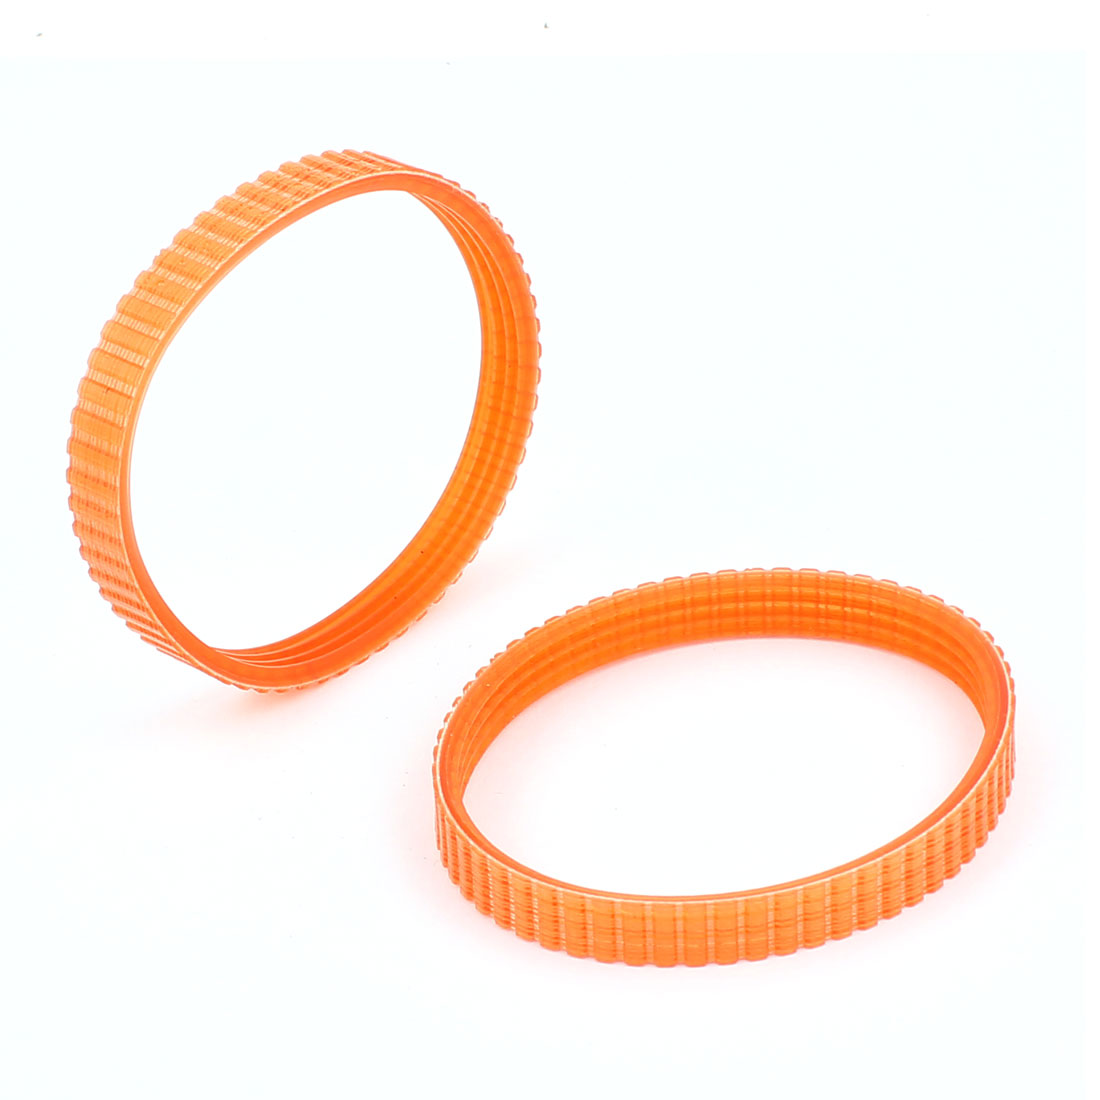 4mm Pitch Single Sided Engine PU Timing Belt Orange 2pcs